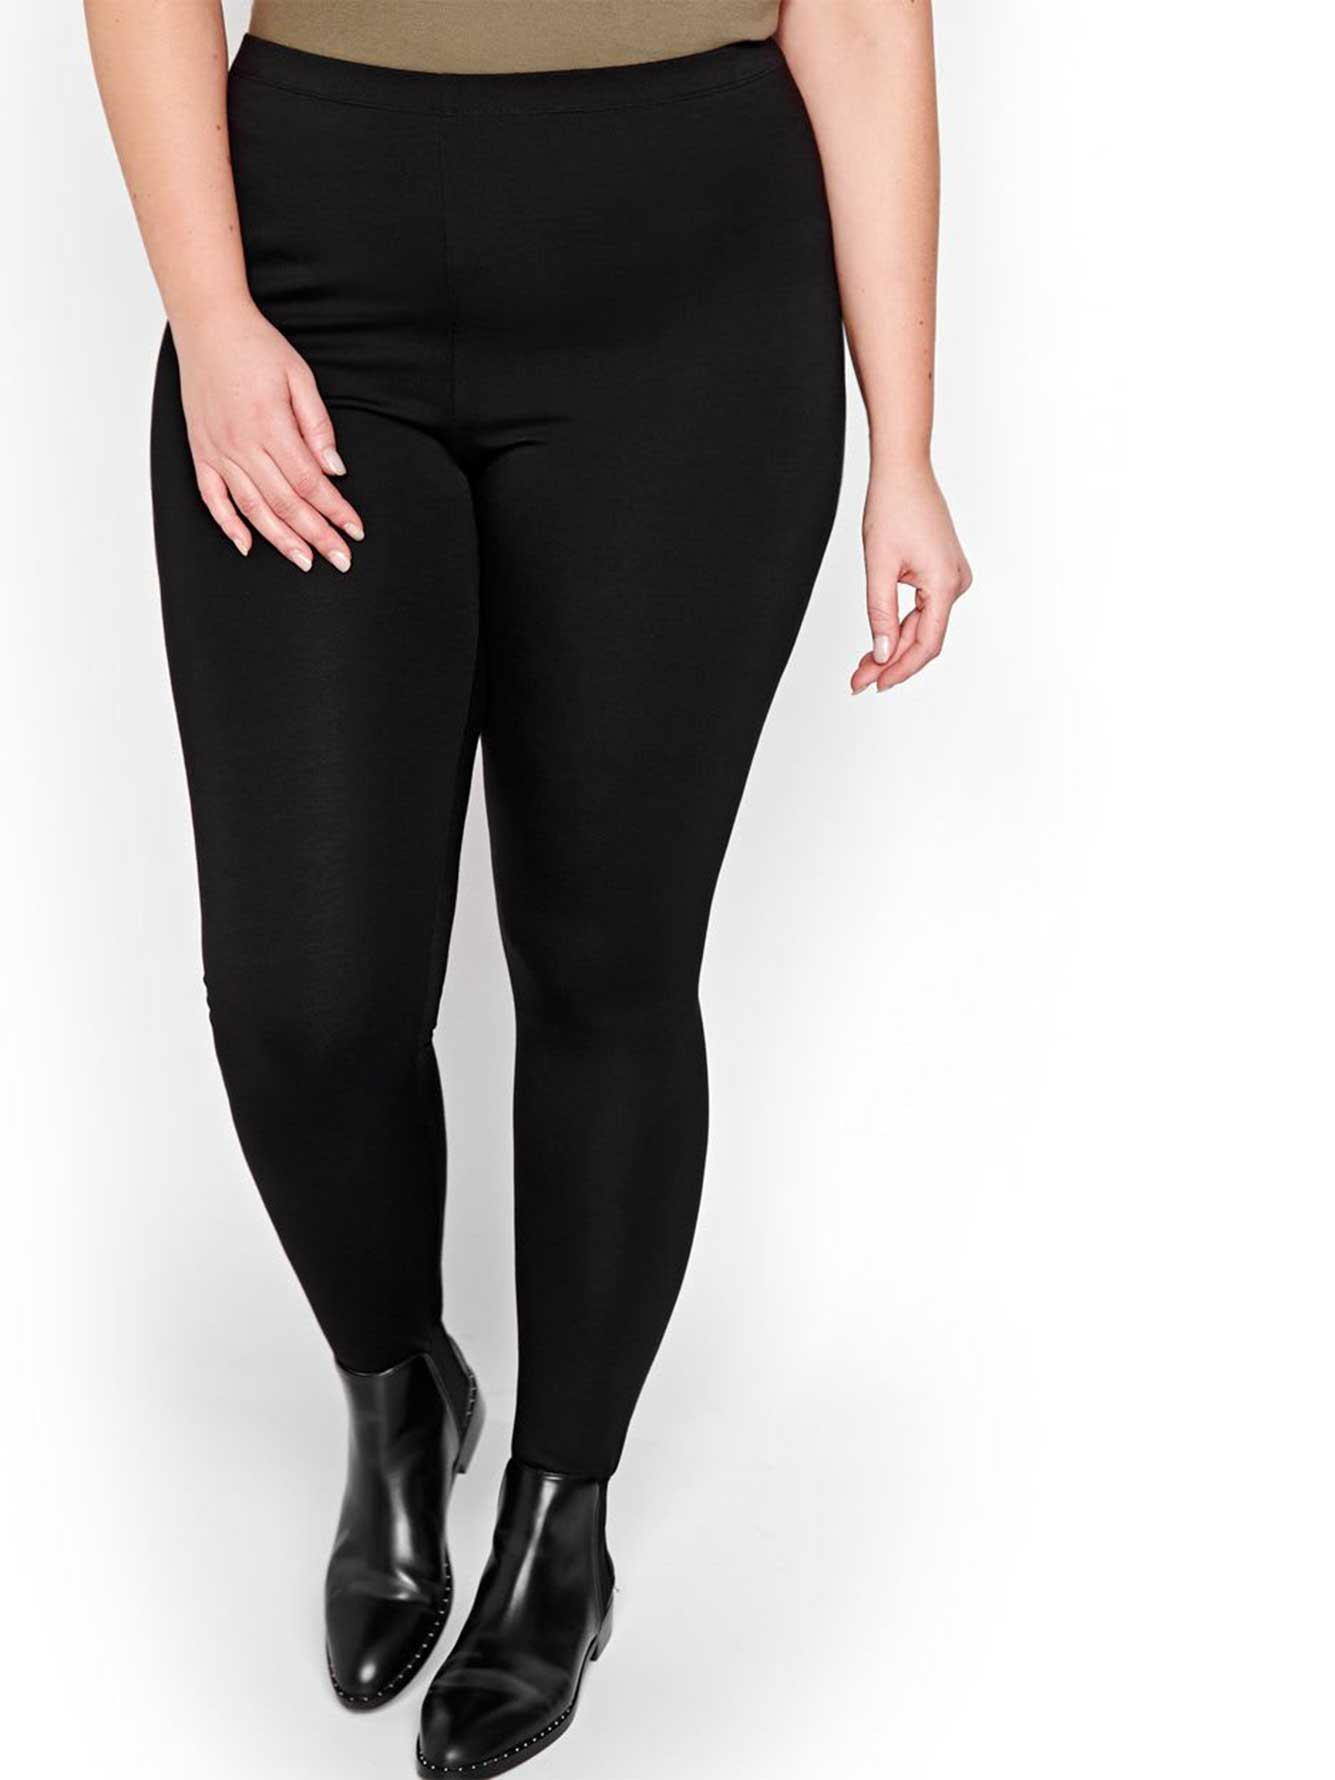 d19c0525aceb6 Stirrup Legging | Addition Elle